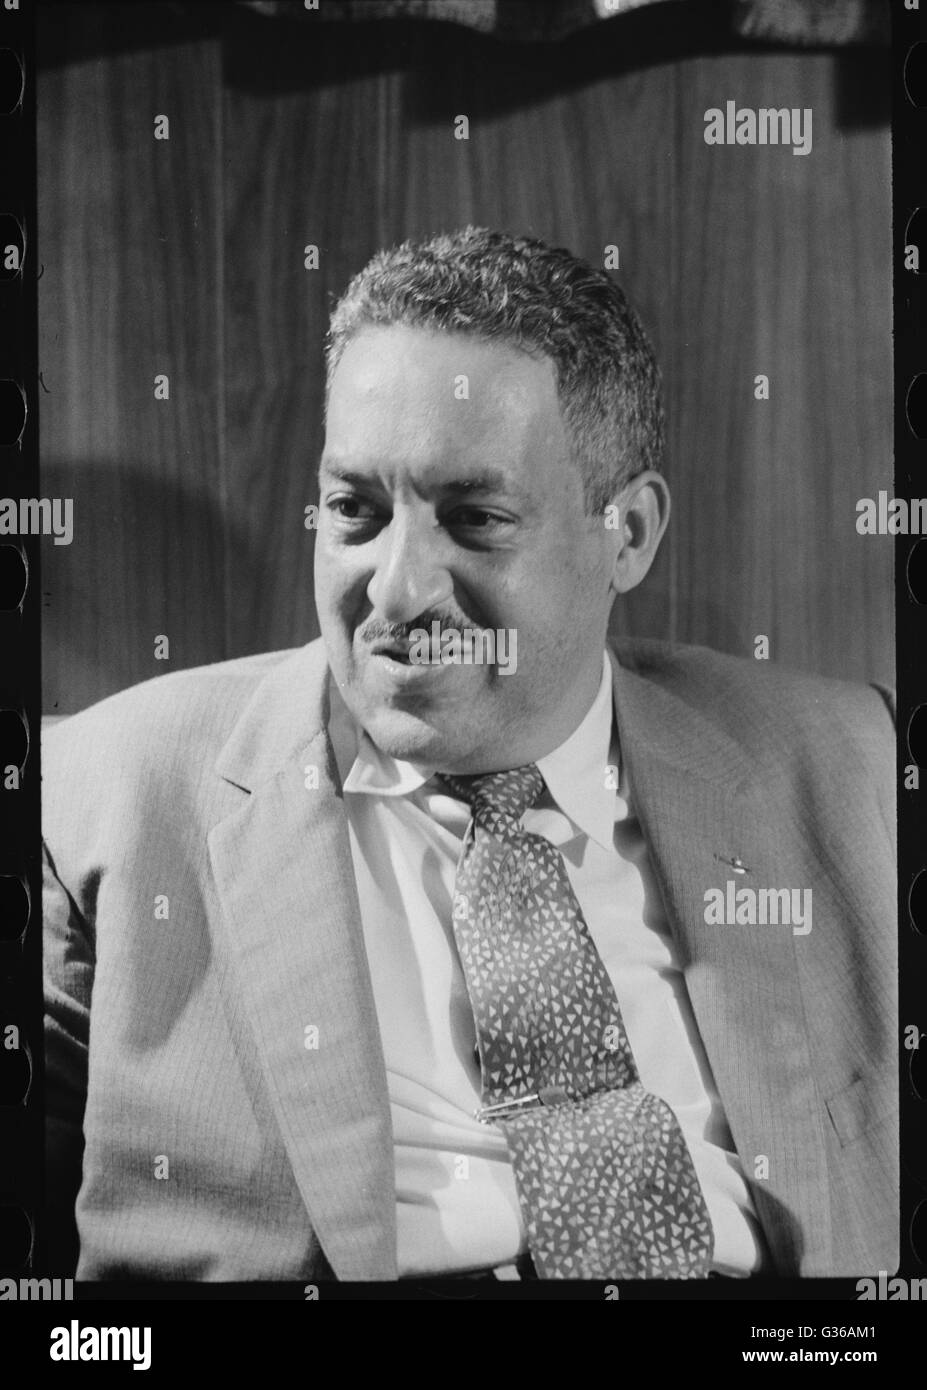 Thurgood Marshall, attorney for the NAACP, would go on to become a Supreme Court Justice. Photo by Thomas J.O'Halloran. - Stock Image